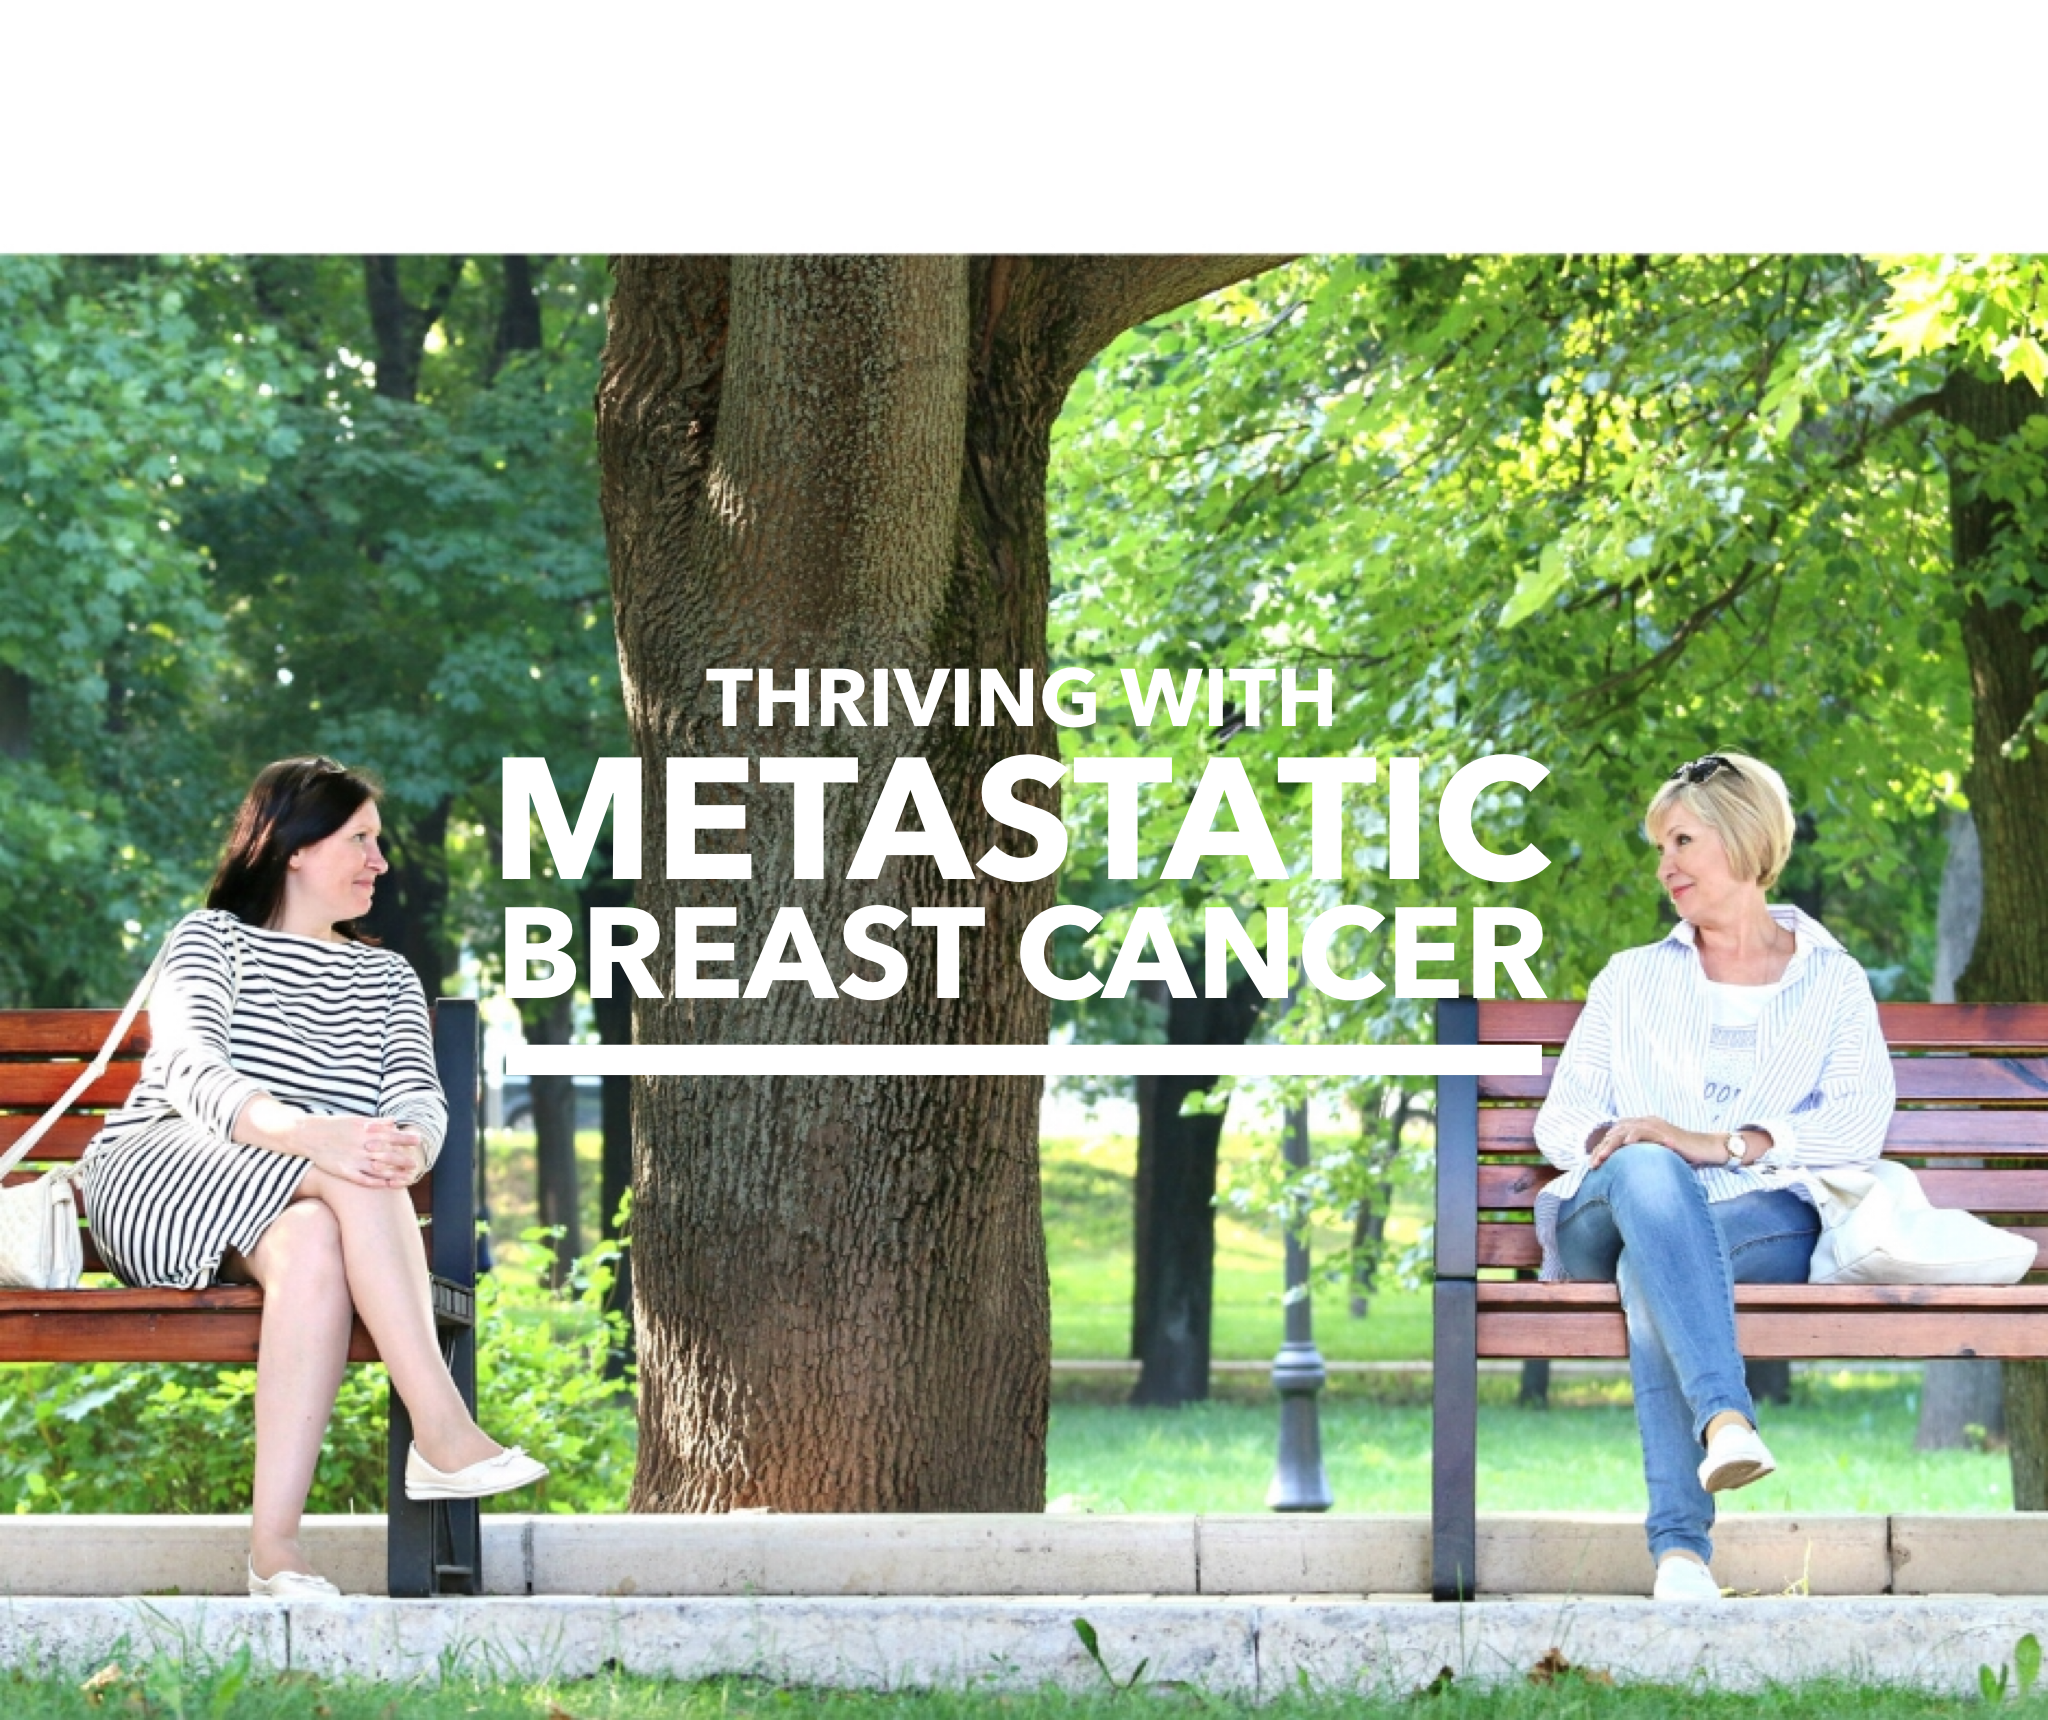 Thriving with Metastatic Breast Cancer in Alpharetta, GA